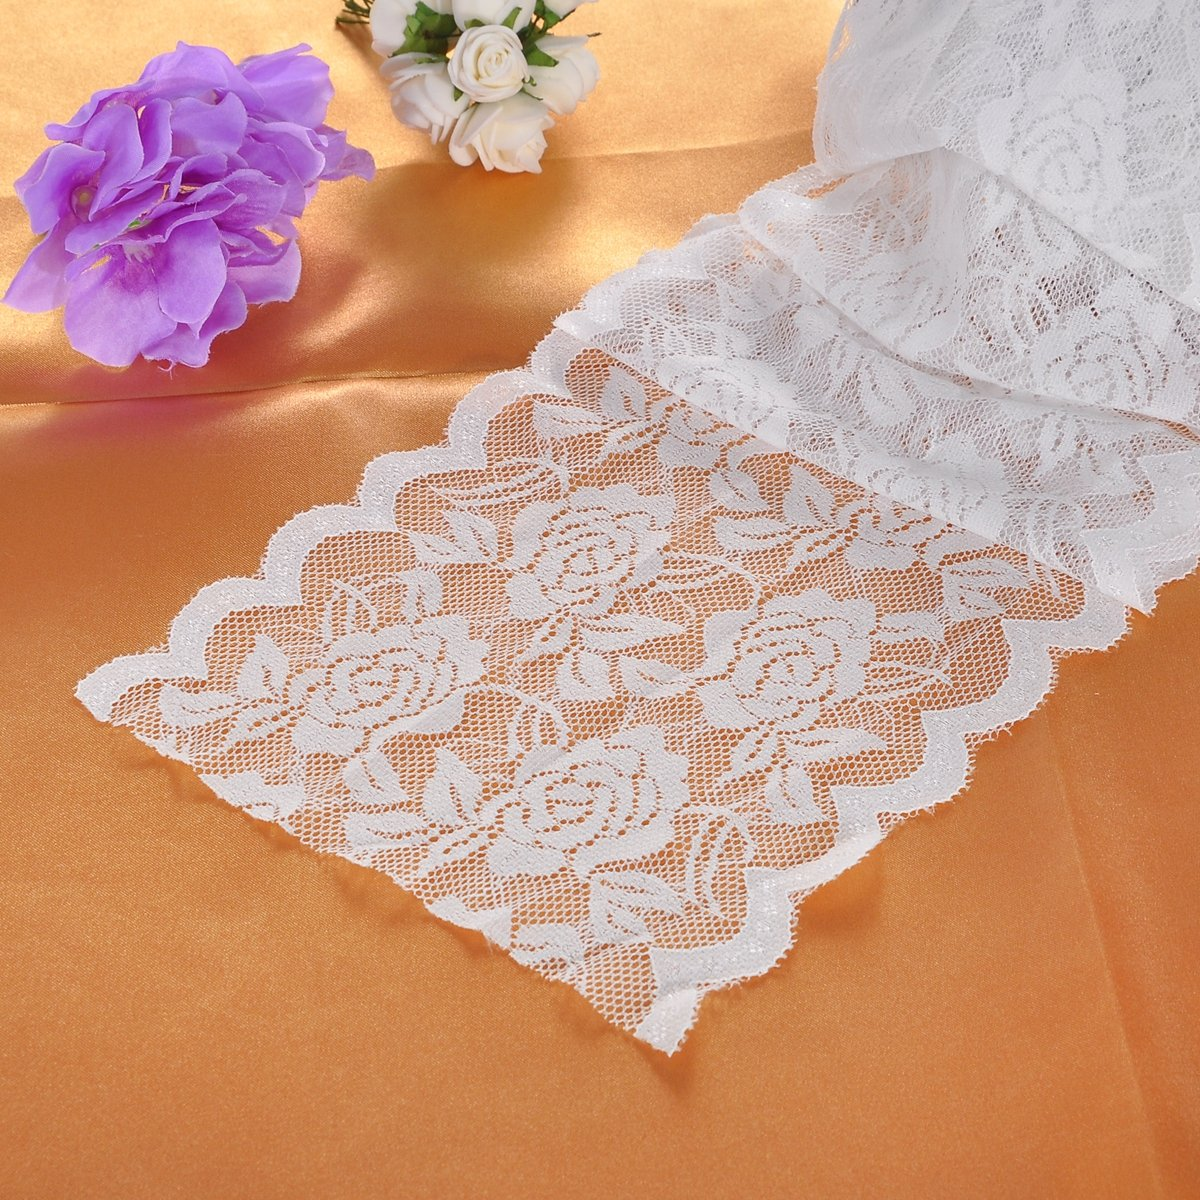 HOUSWEETY 5Yards 3cm White Elastic Lace Trim Ribbon Fabric DIY Decor Crafts Sewing Suppies